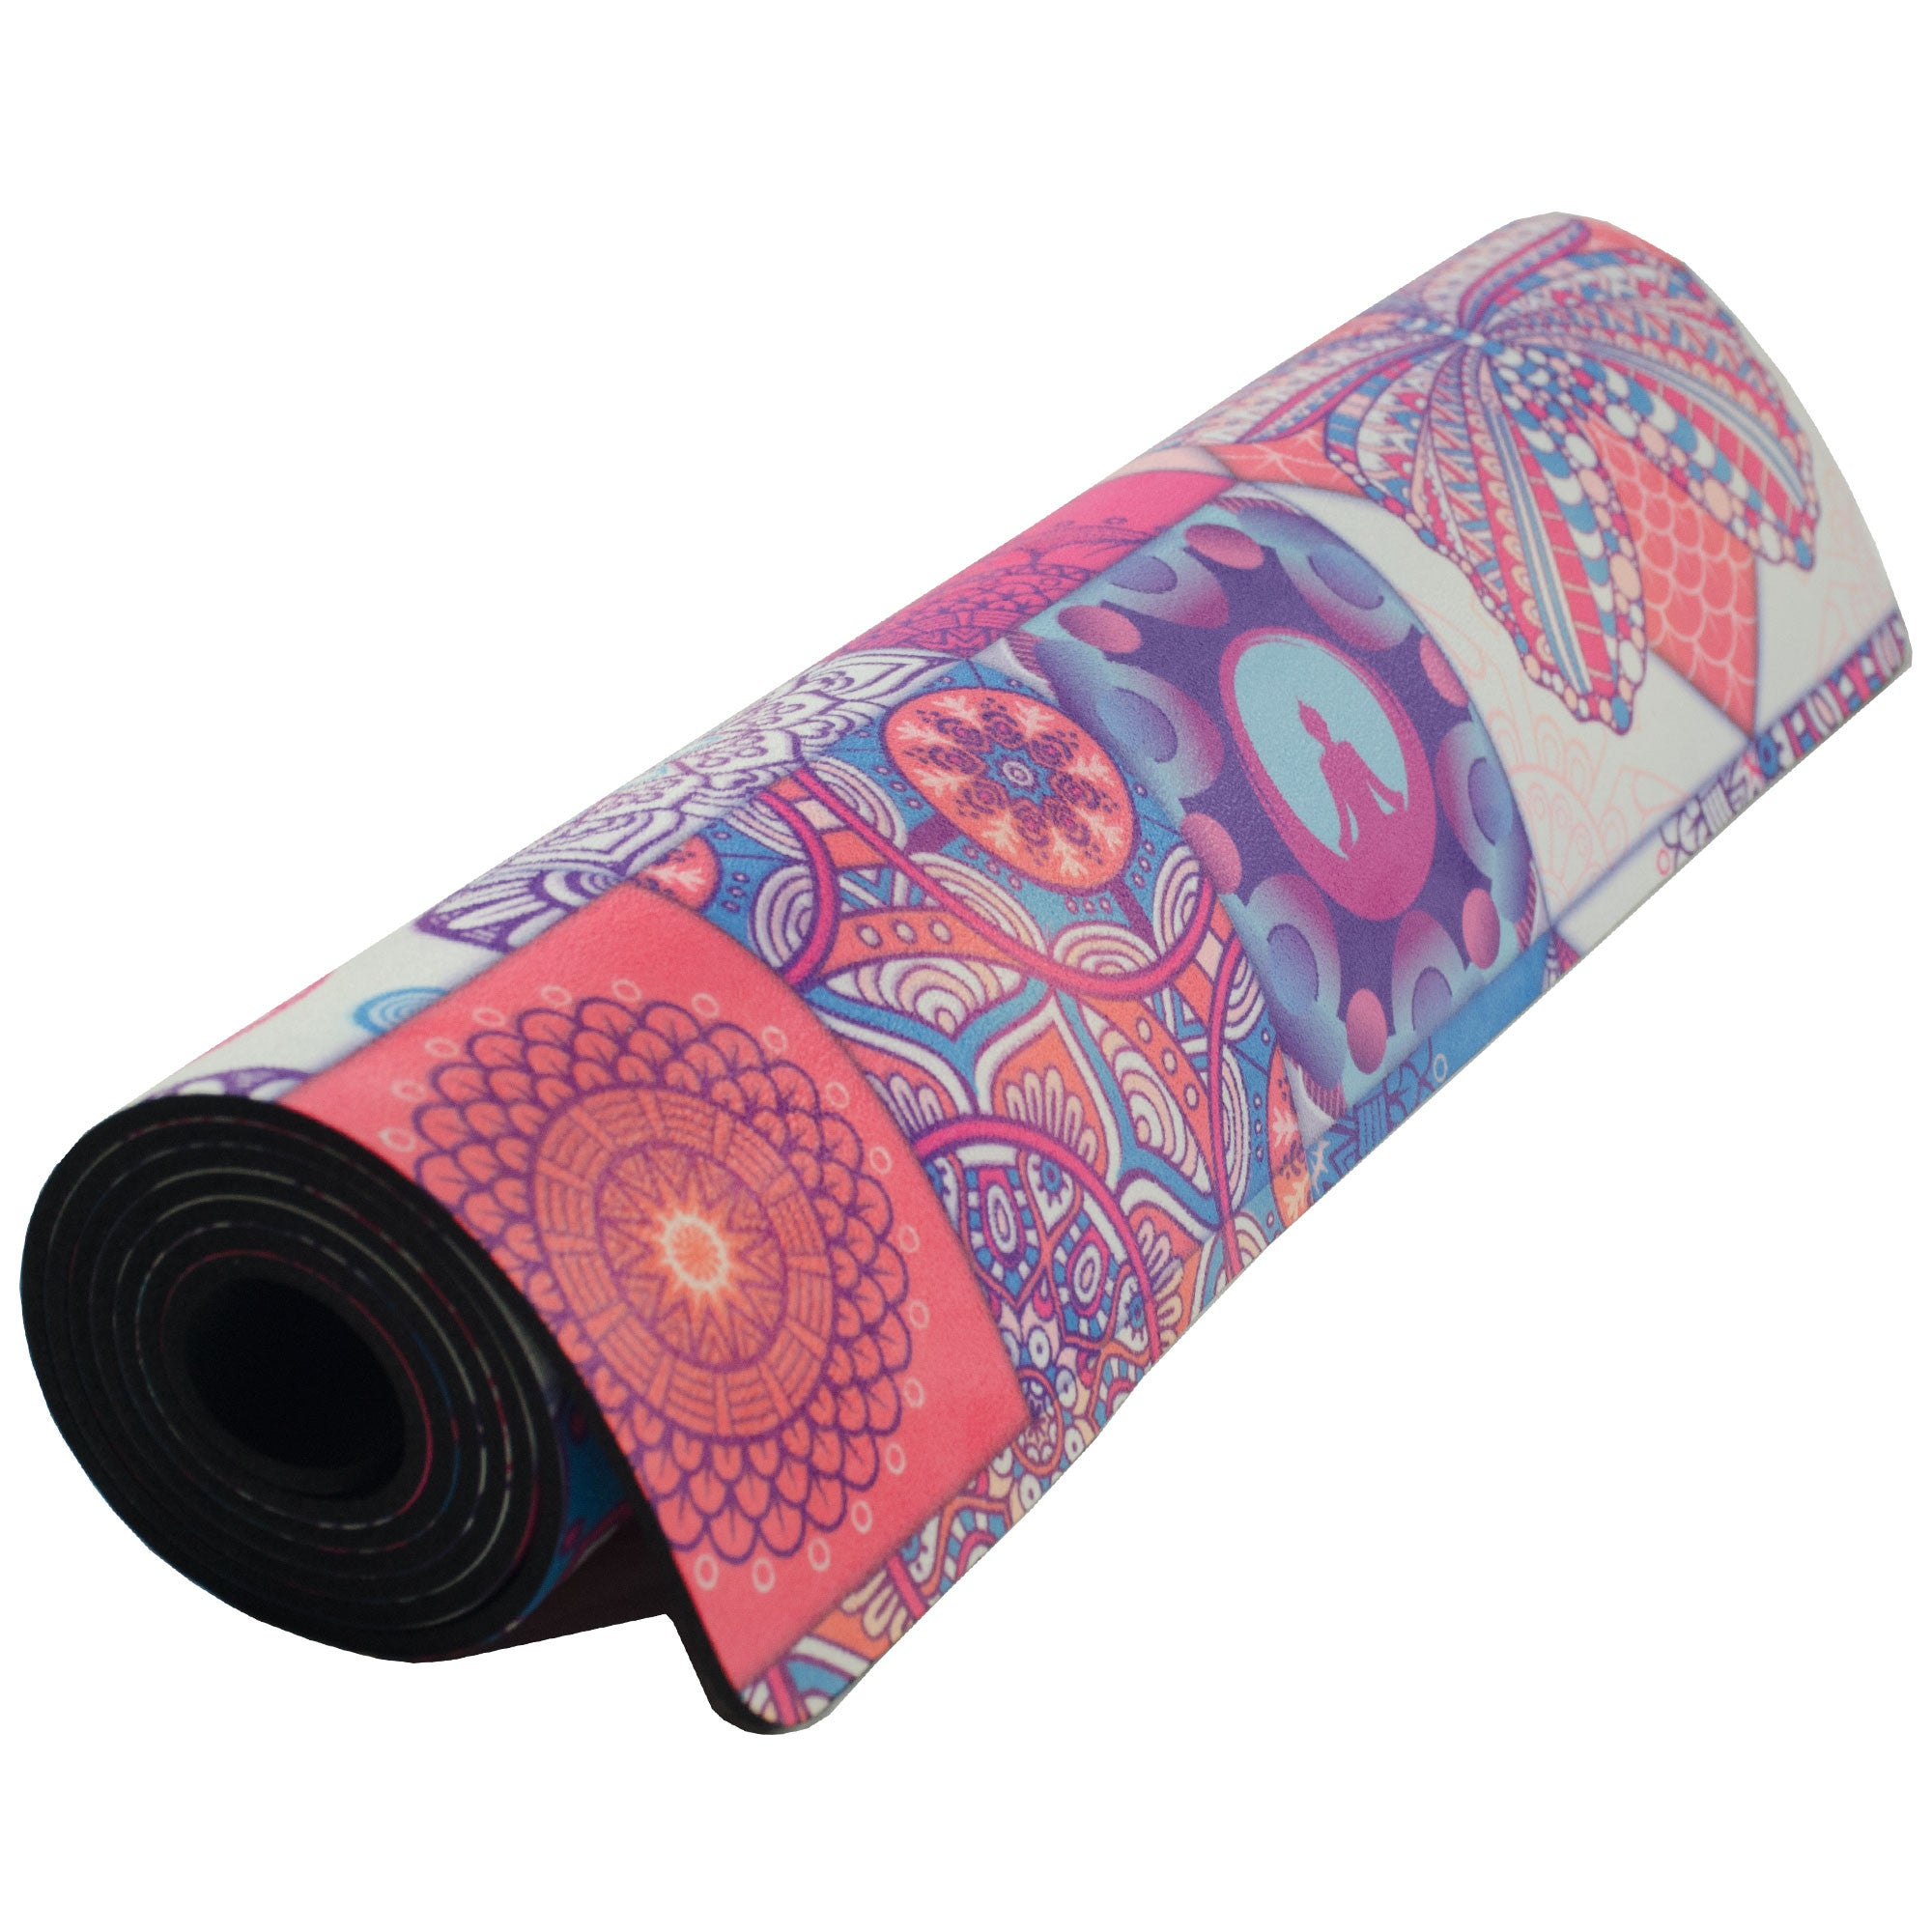 printing sale mat professional tpe material with mats foam yoga rubber custom neoprene sheet